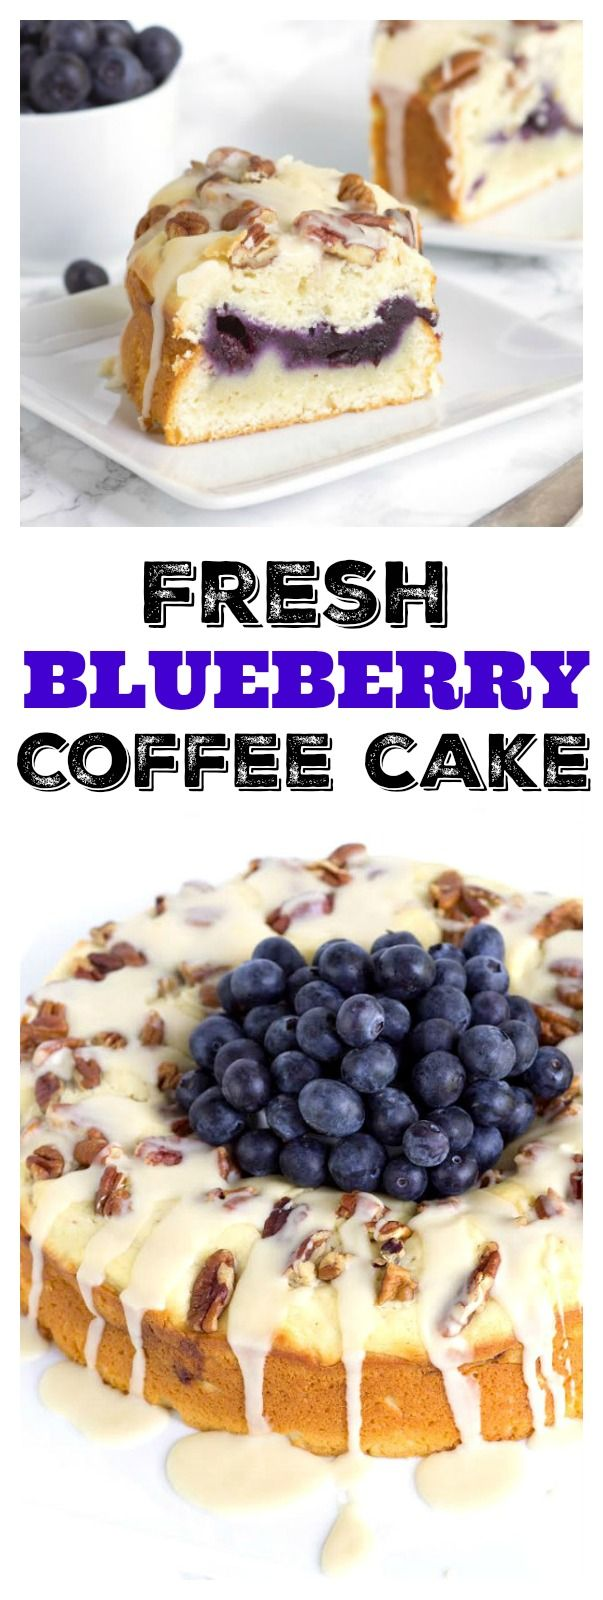 Beautiful, fresh Blueberry Coffee Cake recipe. Perfect for using up summer- fresh, sweet blueberries!